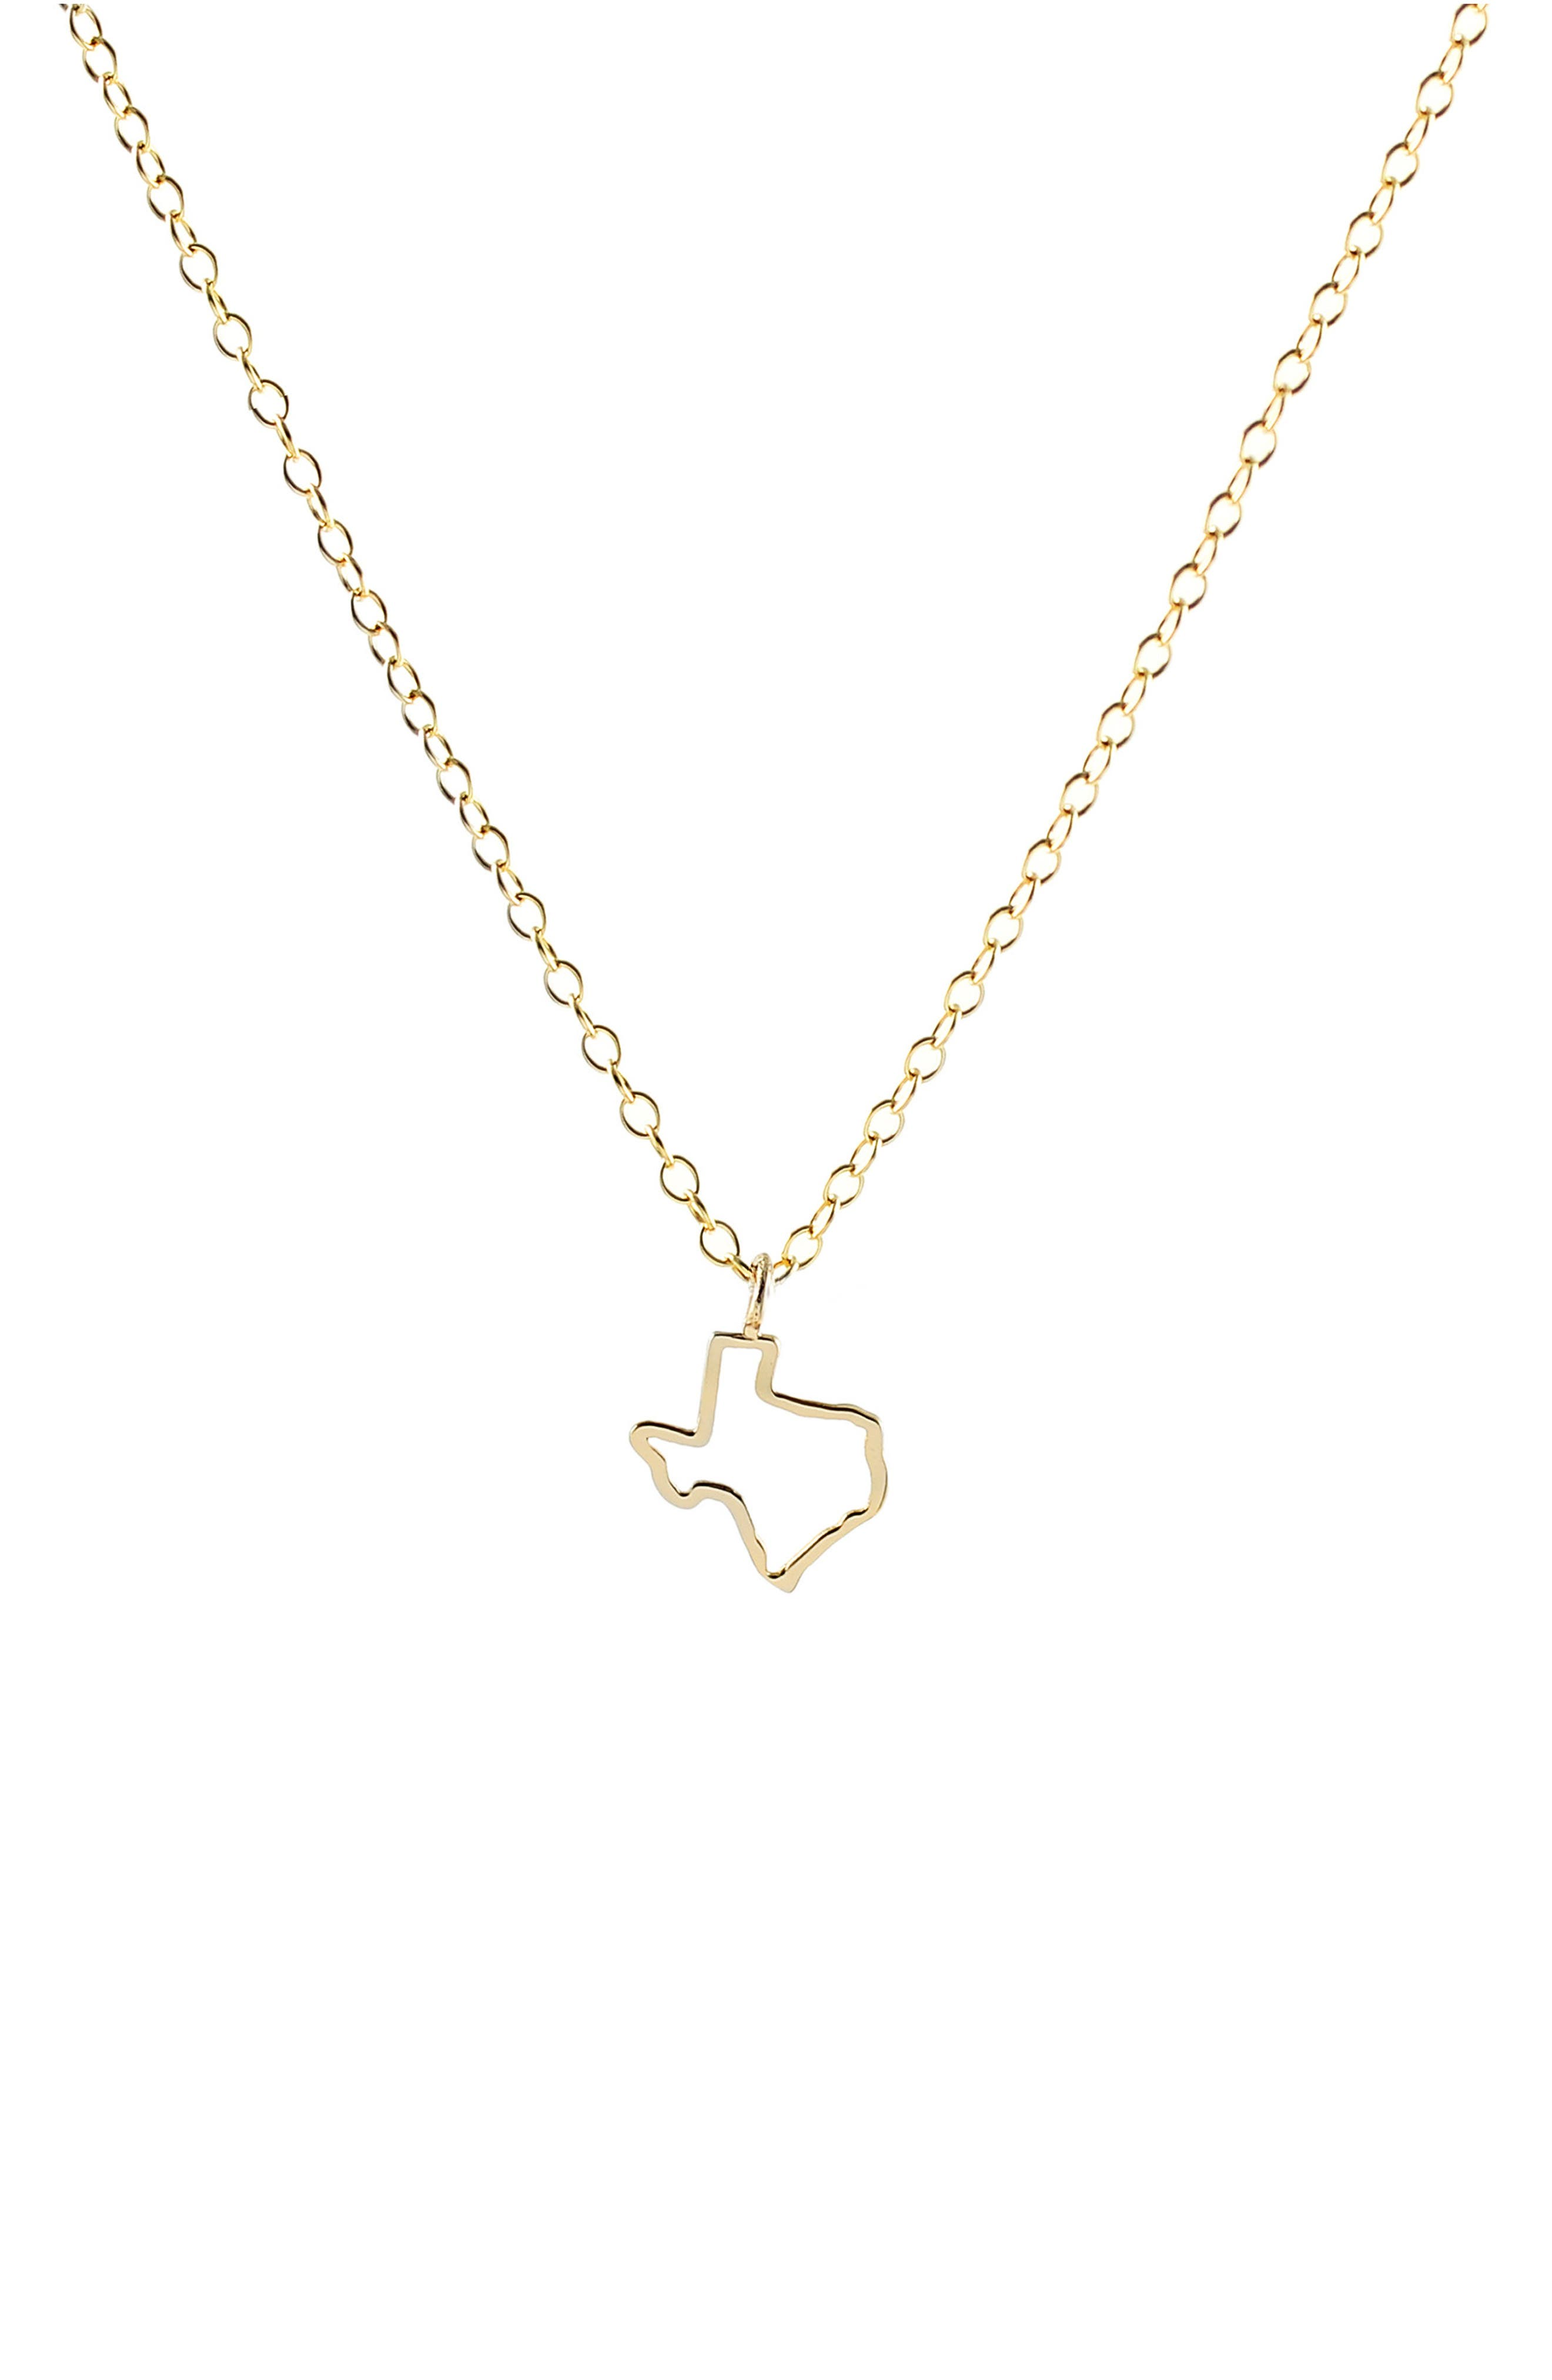 Texas Outline Charm Necklace,                             Main thumbnail 1, color,                             TEXAS - GOLD